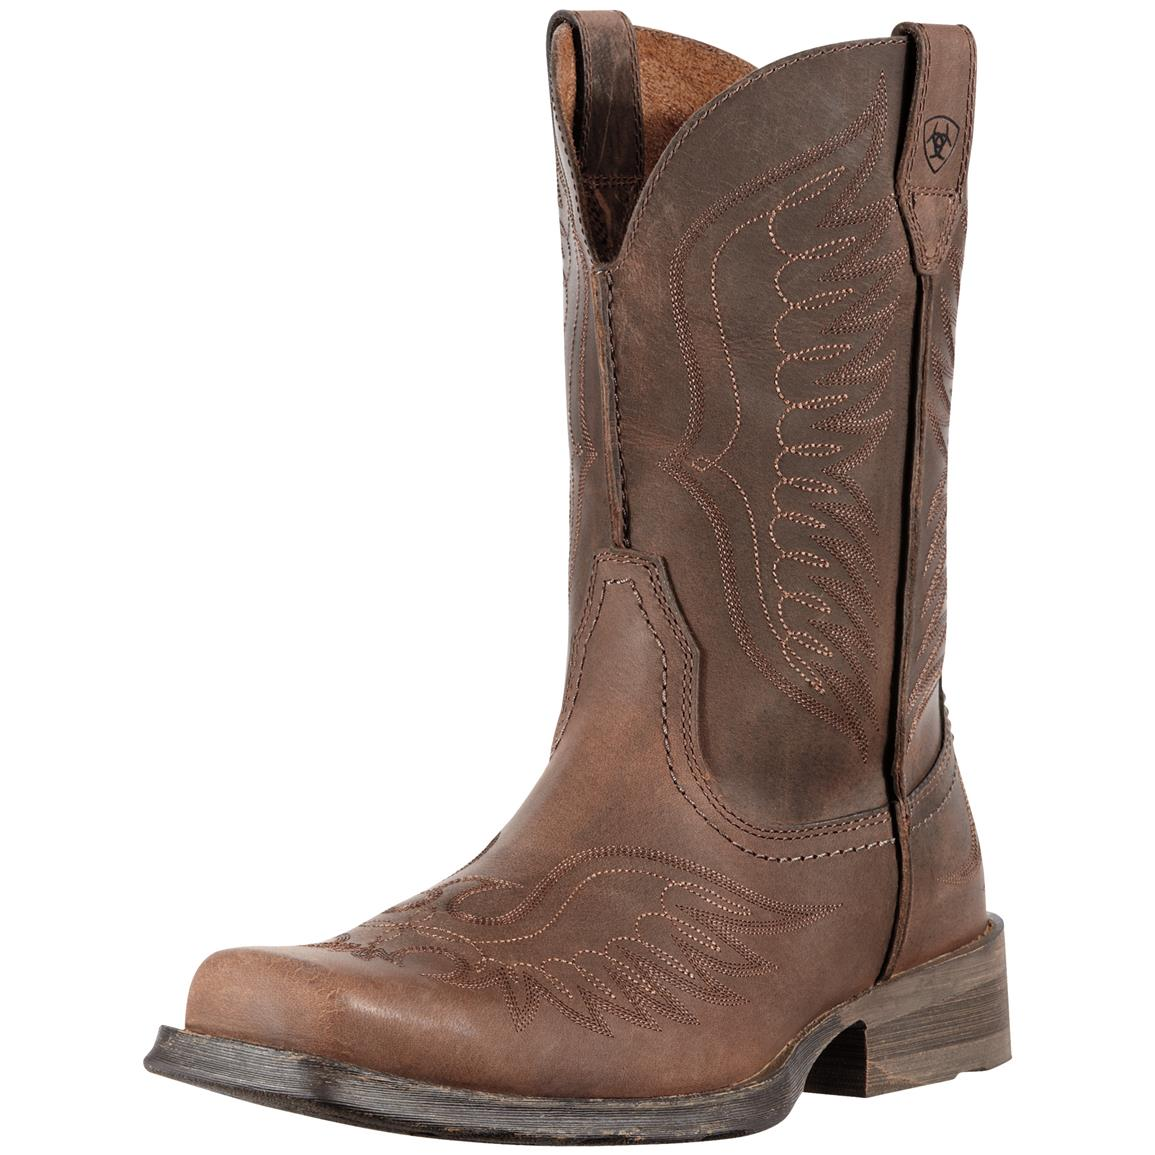 Ariat Rambler Phoenix Western Boots, Distressed Brown